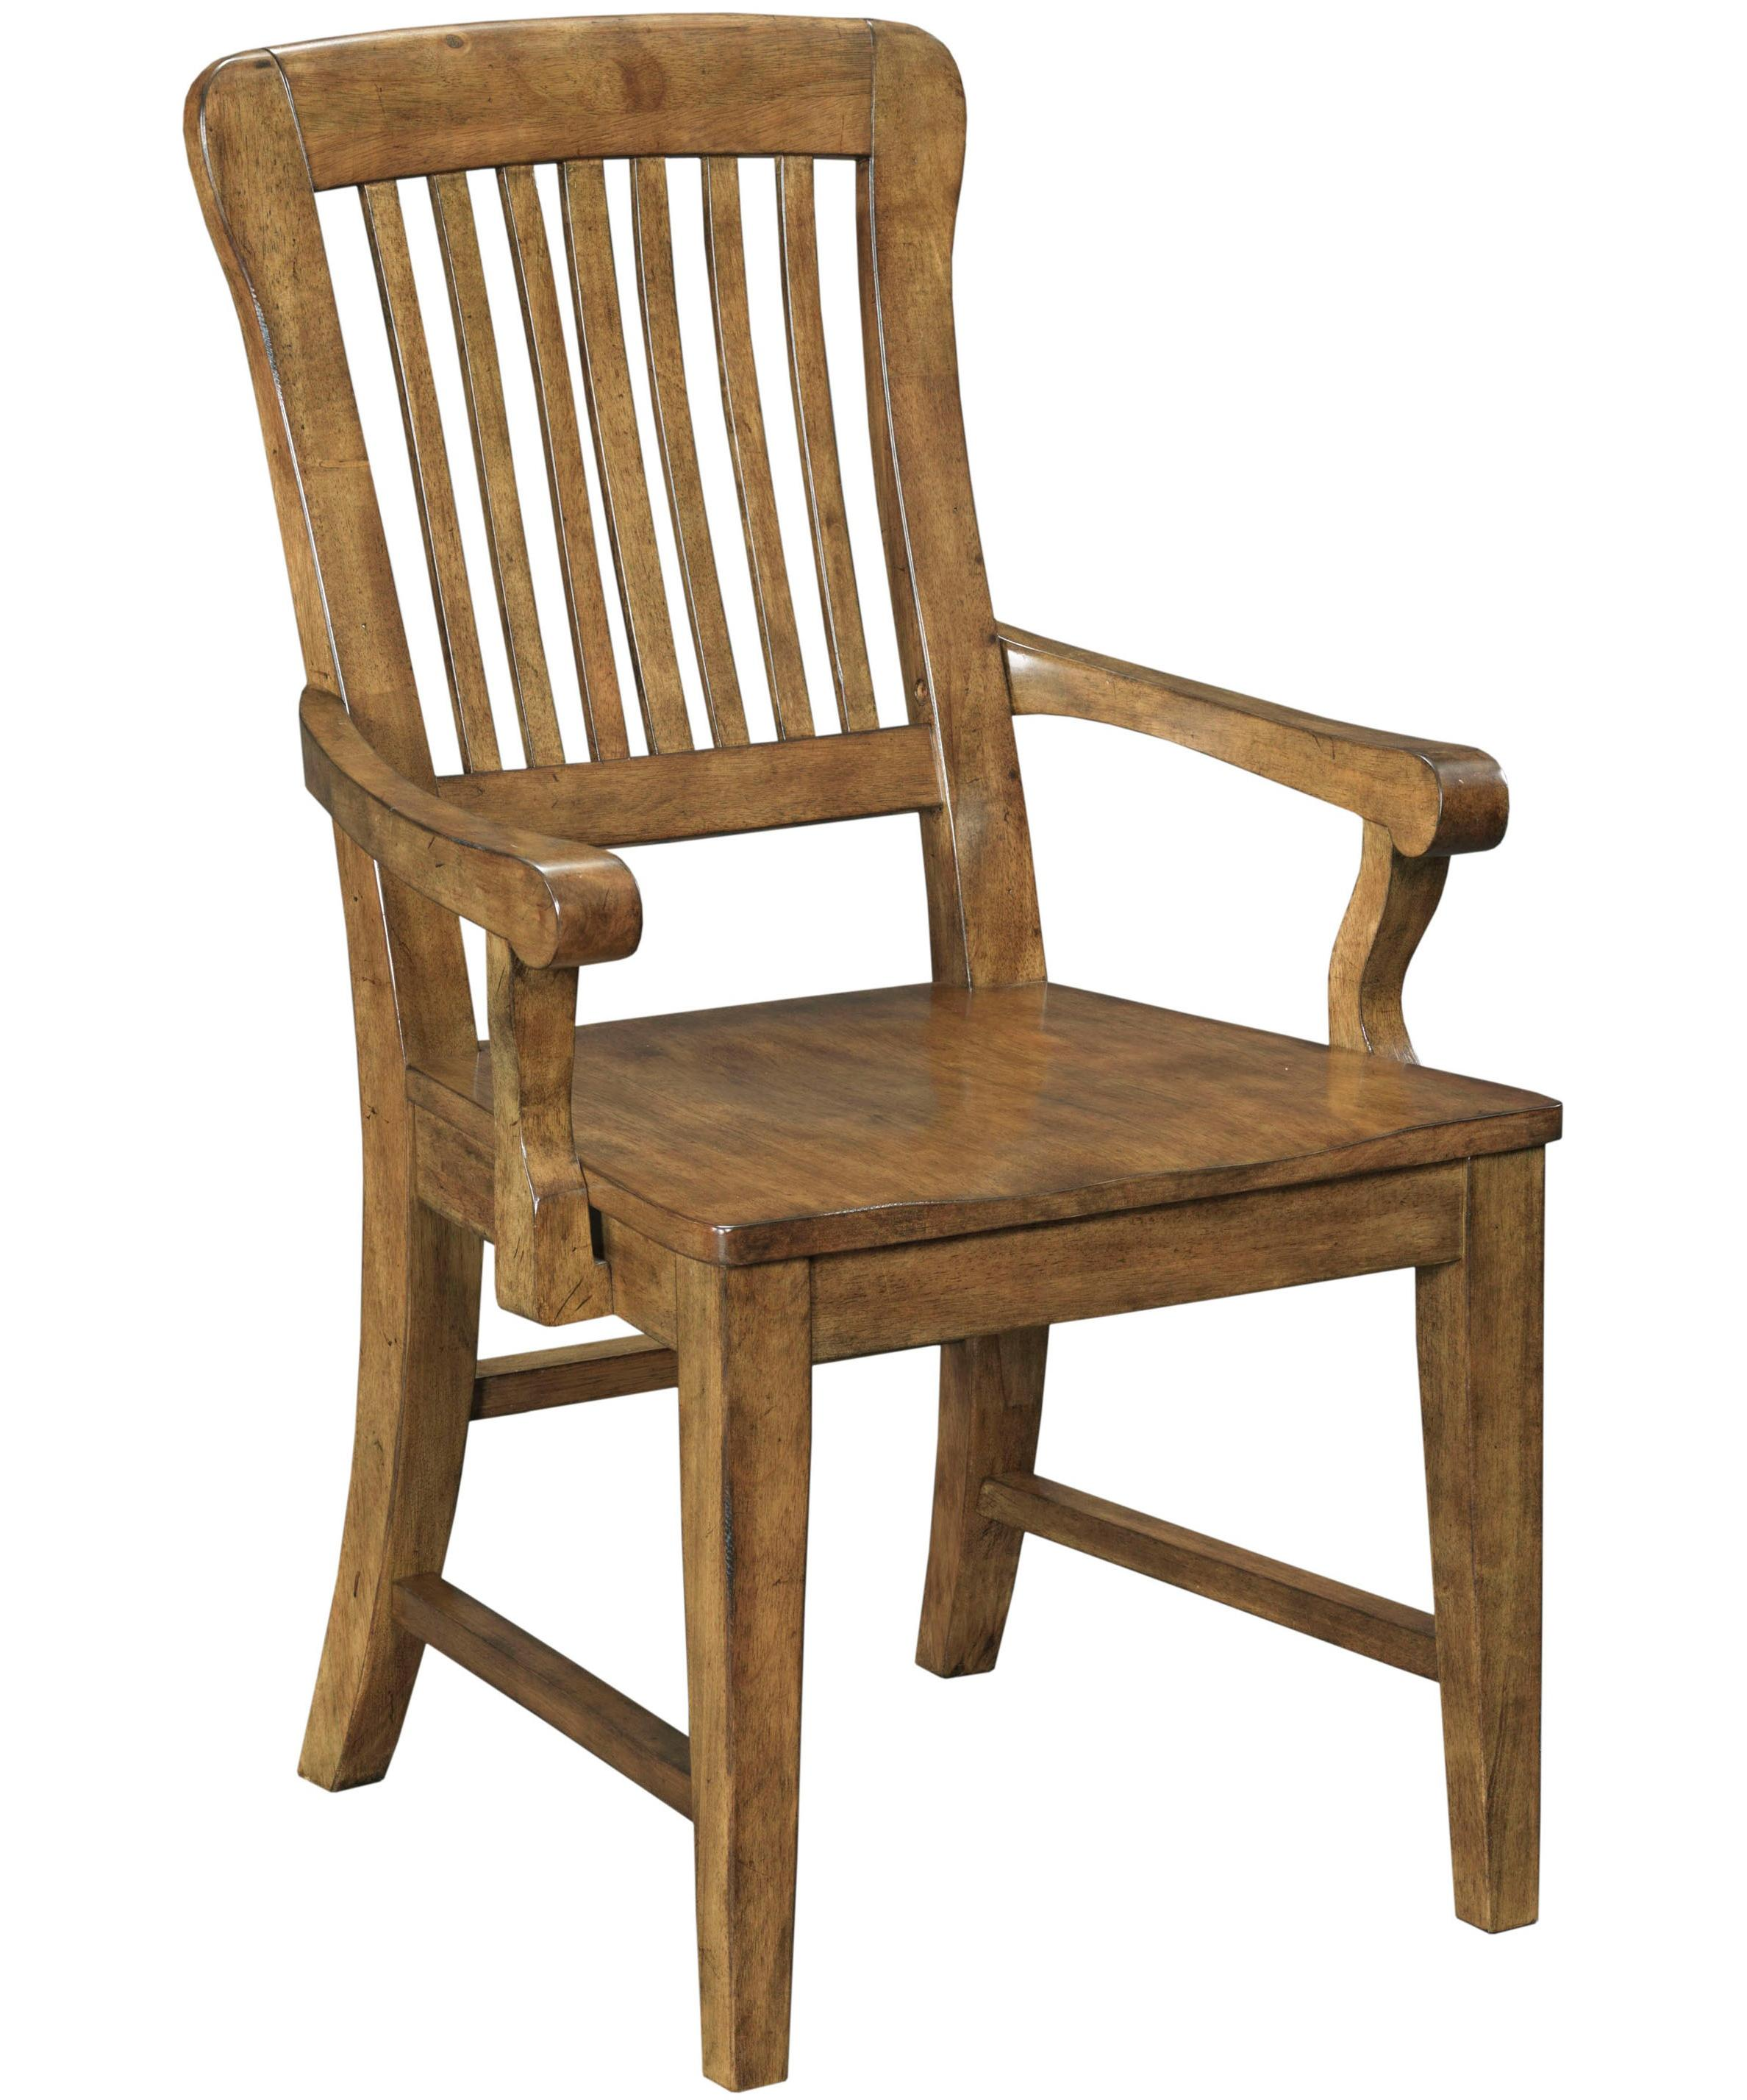 Broyhill Furniture New Vintage School House Wood Seat Arm Chair - Item Number: 4808-580